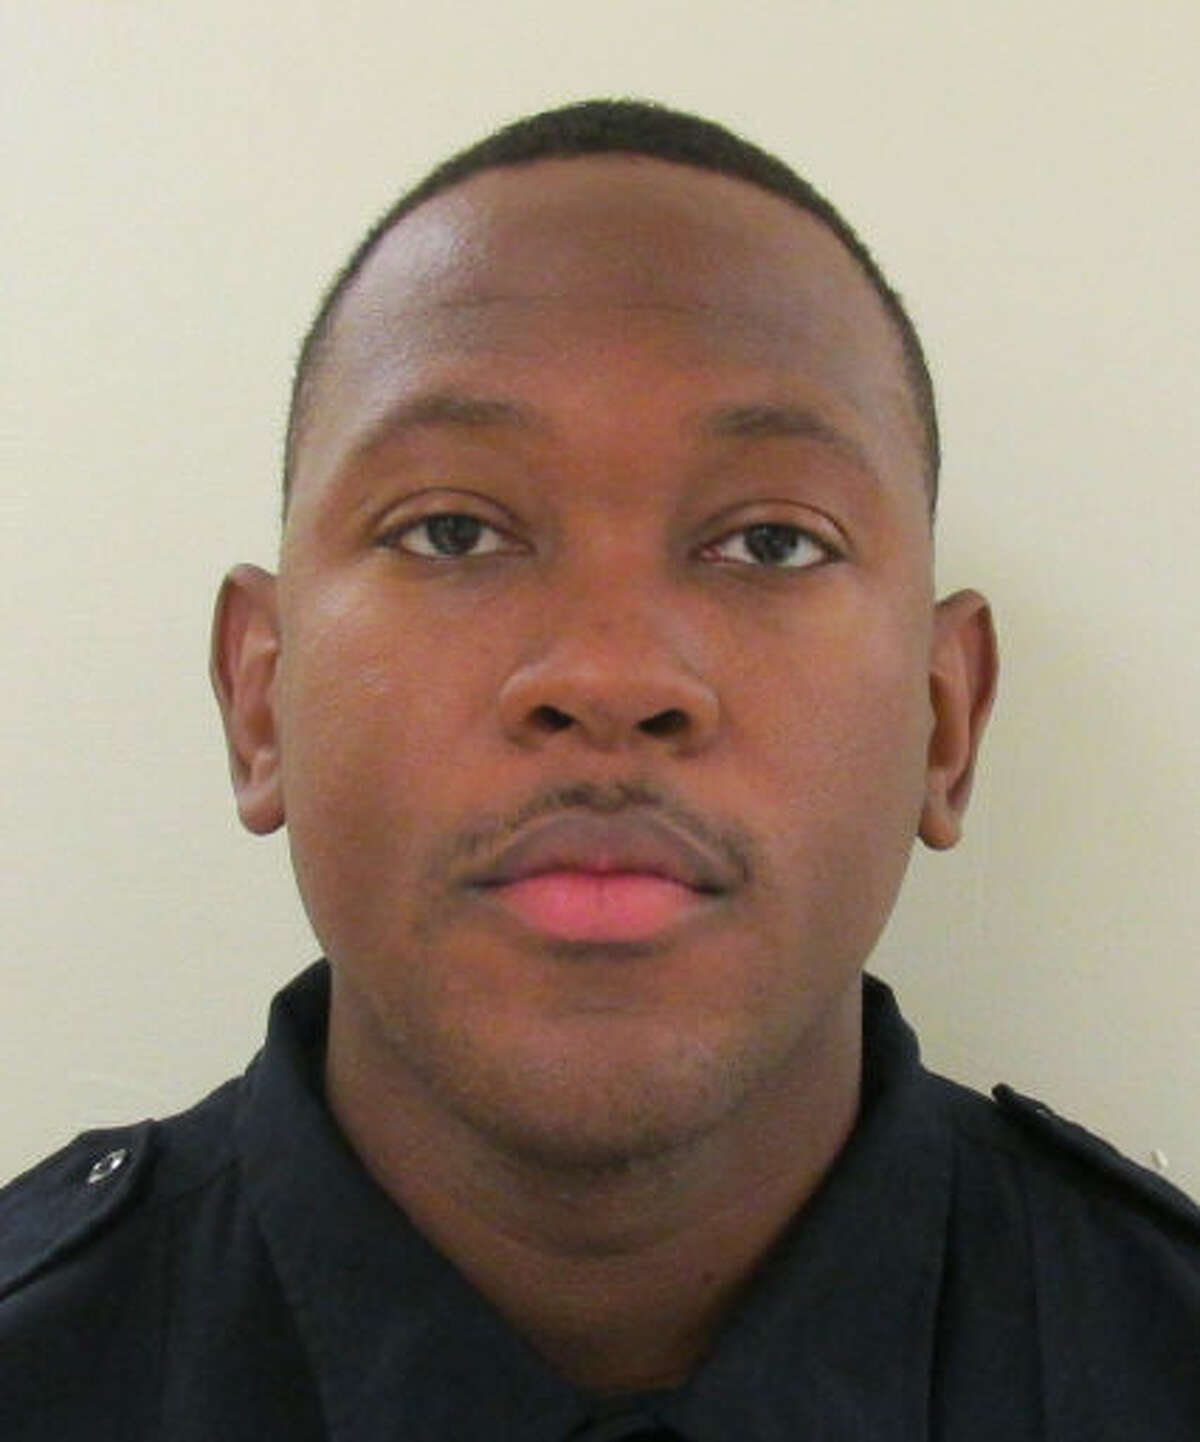 Bexar County Sheriff's Deputy Andre Winston, 25, was fired after being arrested on a 2018 warrant.